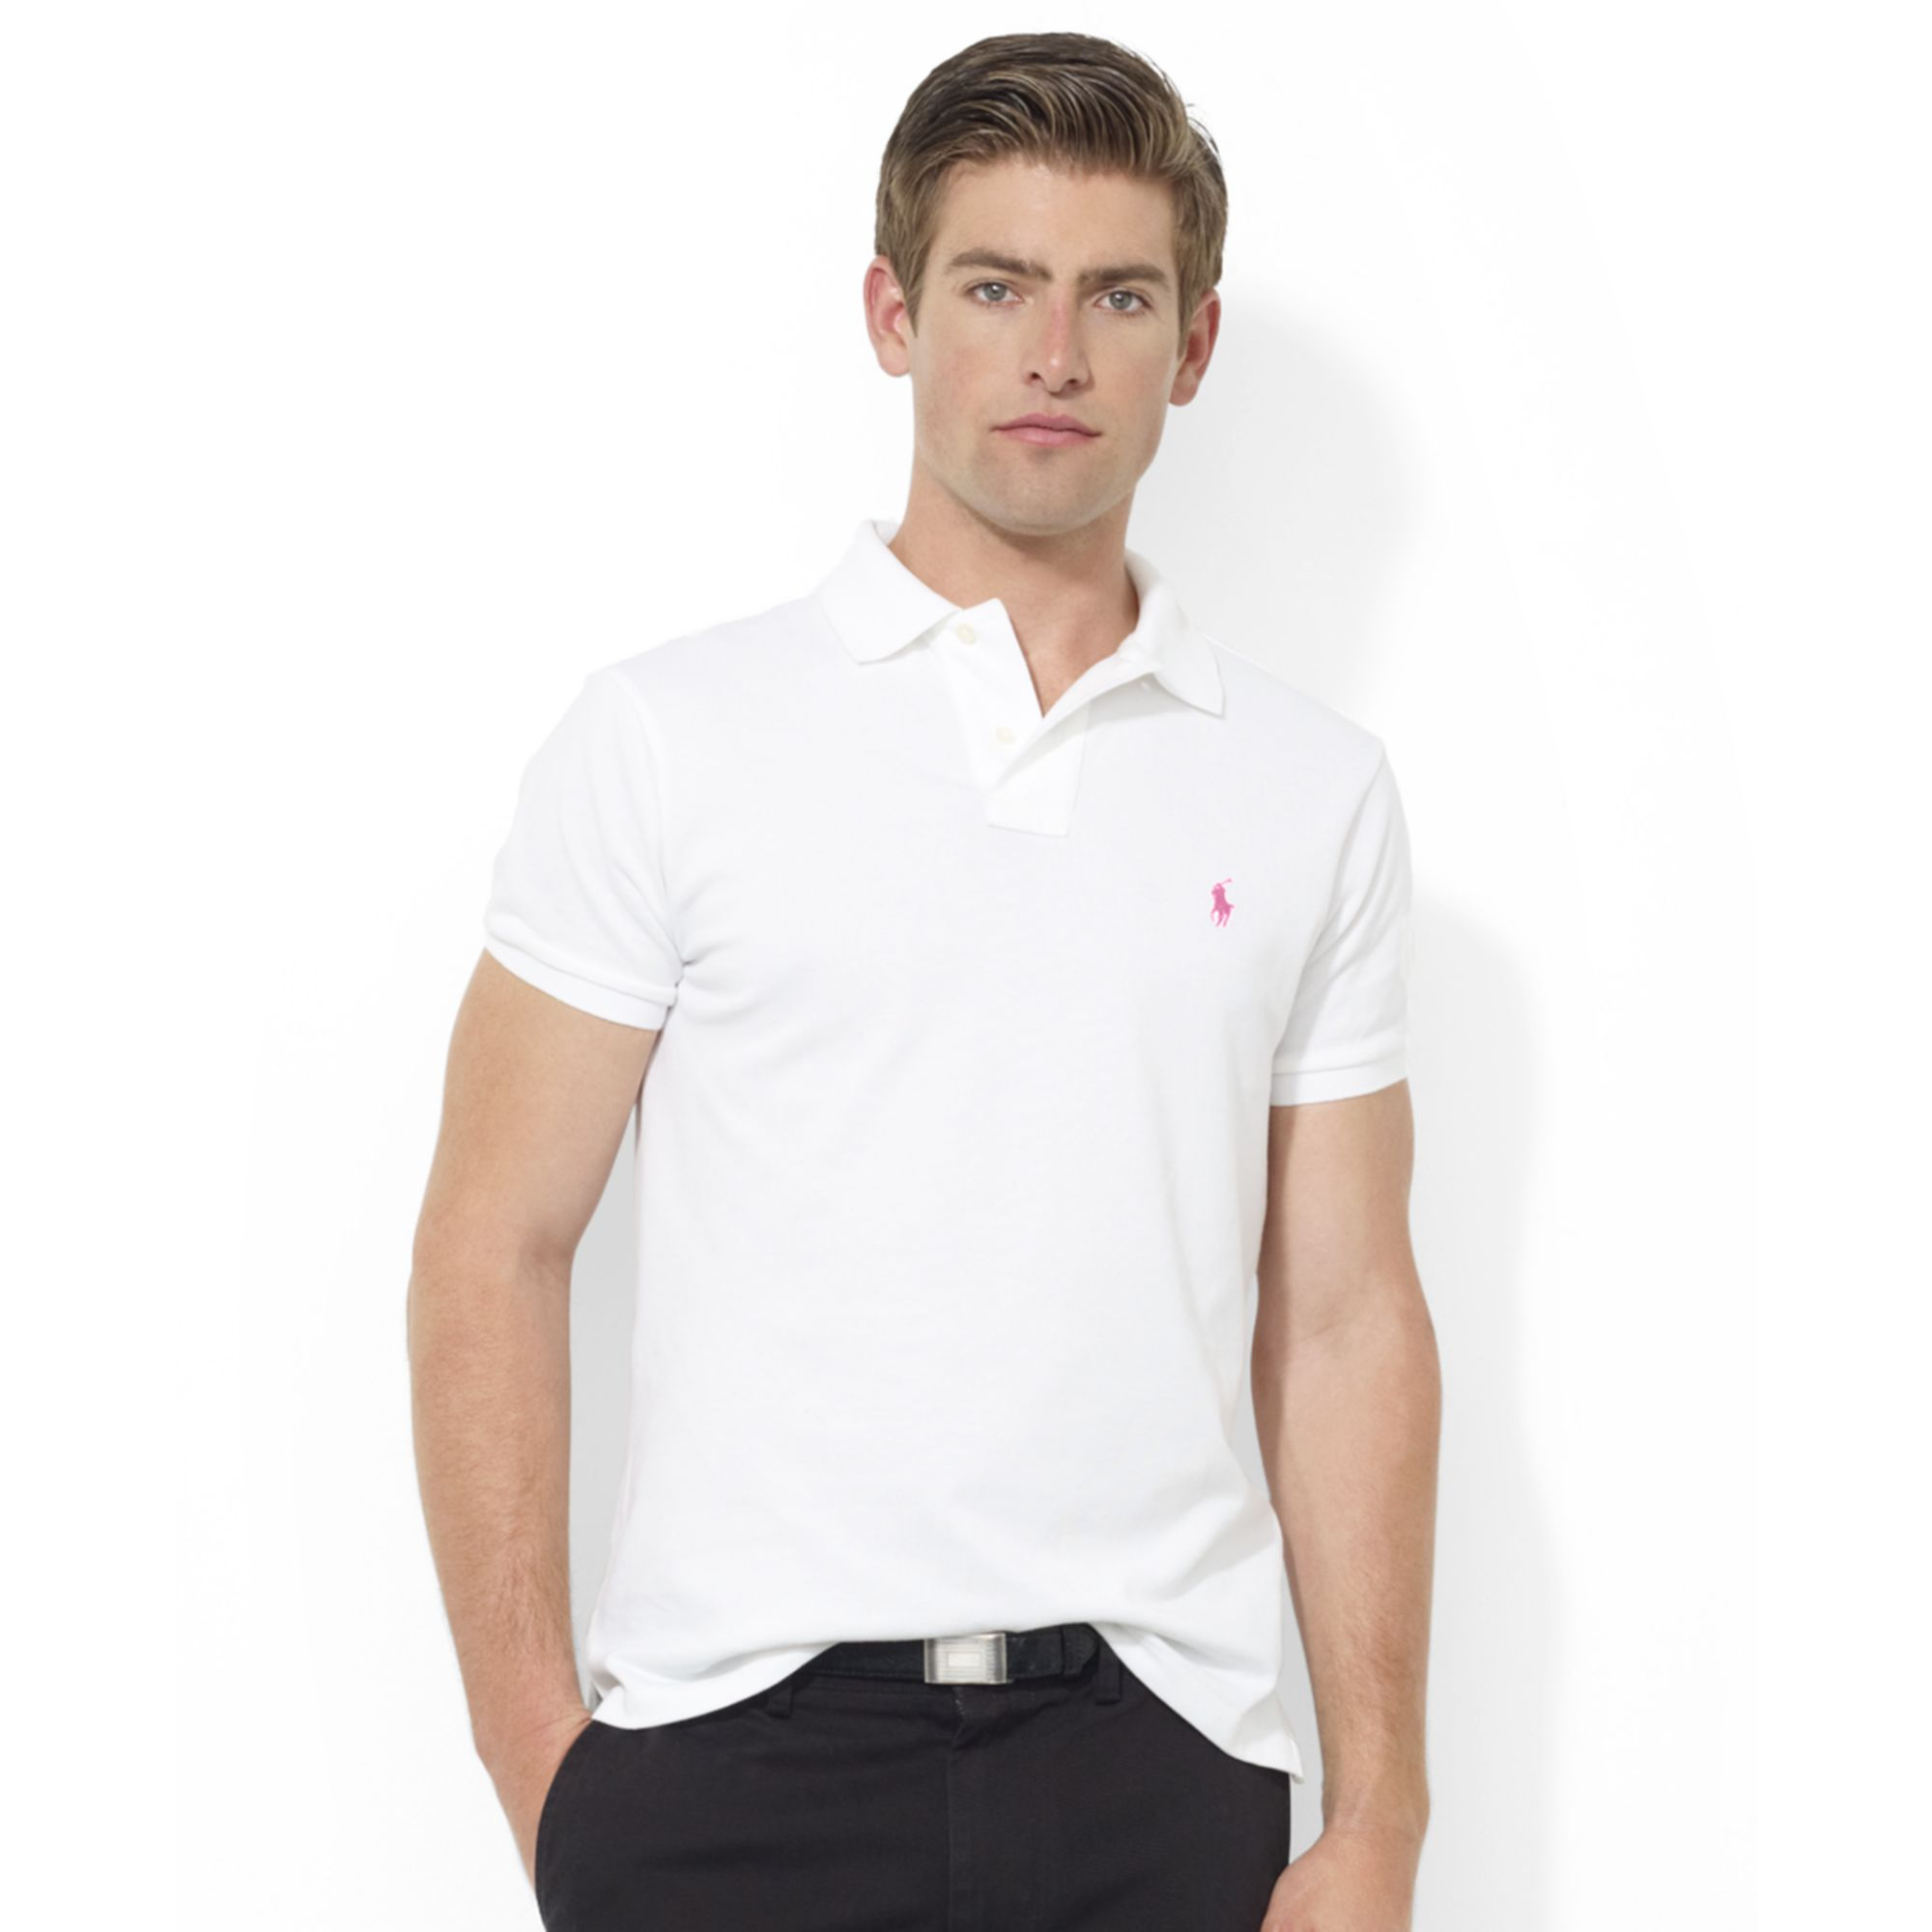 32741bc14c69 Lyst - Ralph Lauren Pink Pony Customfit Shortsleeve Mesh Polo in ...